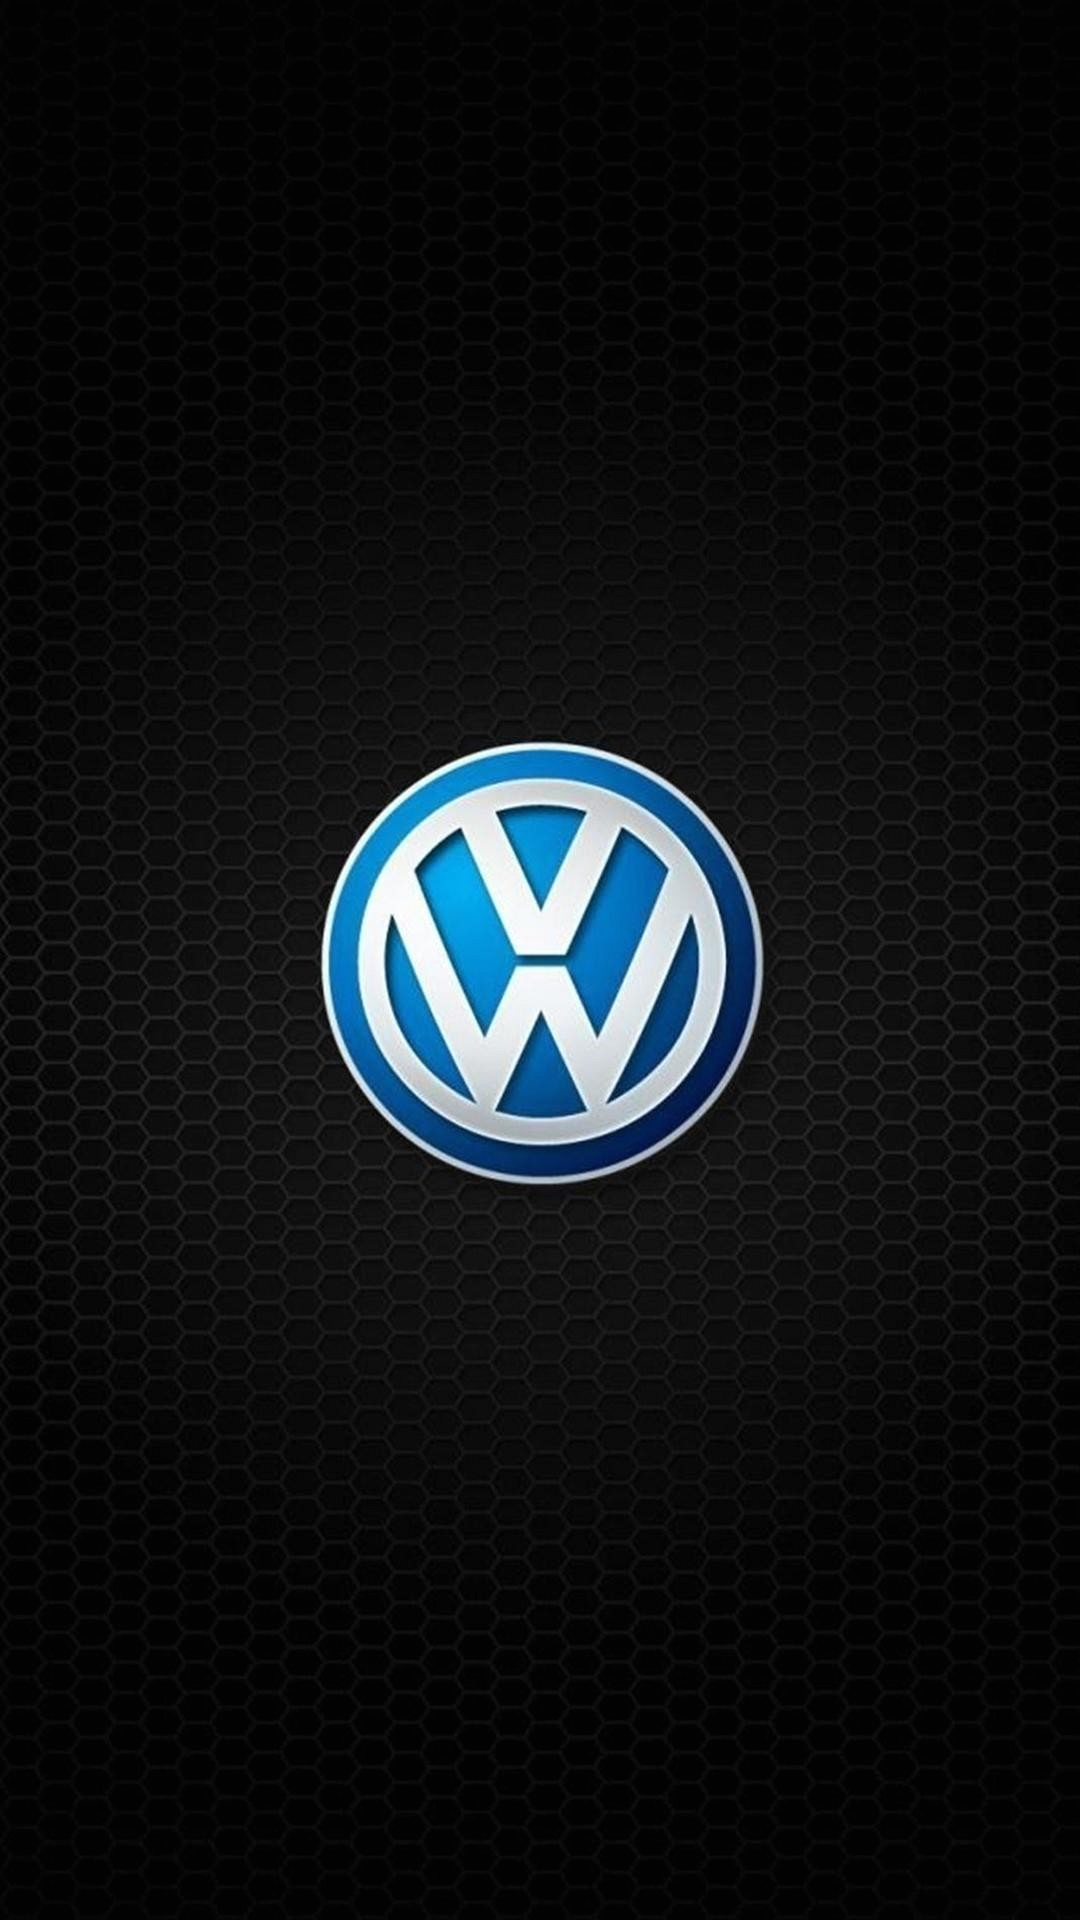 Vw Logo Hd Mobile Volkswagen Wallpaper